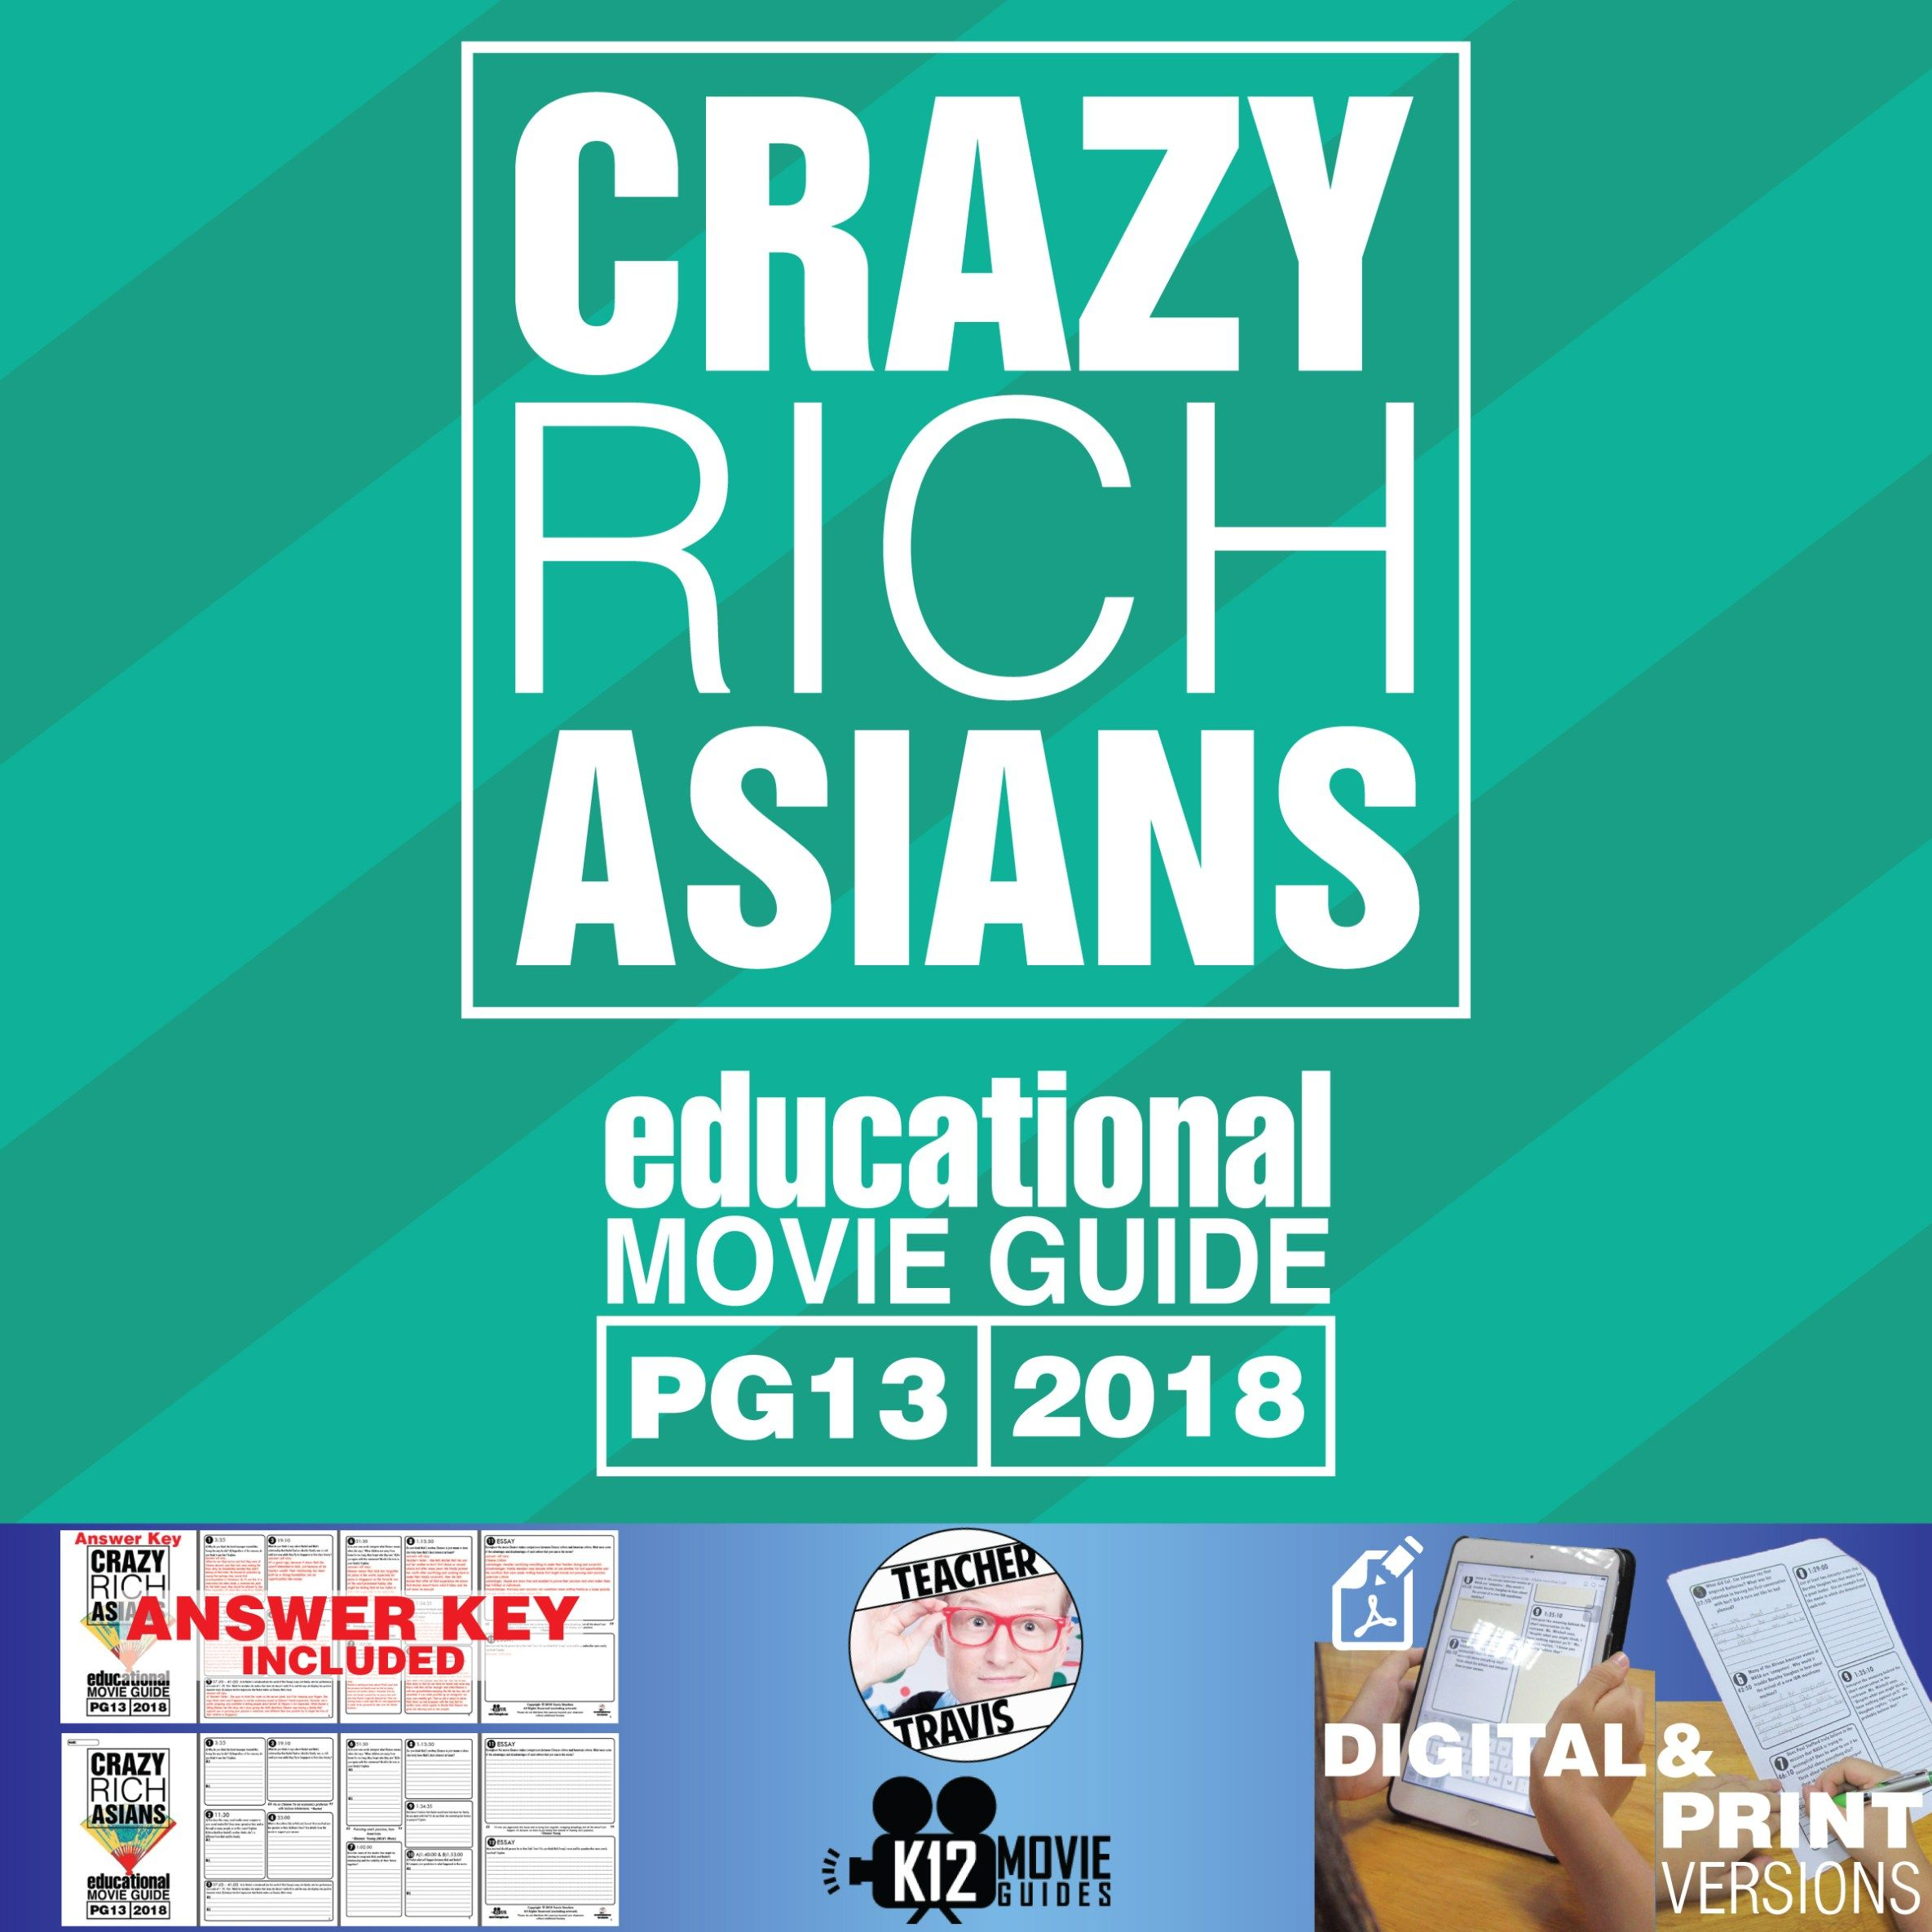 Crazy Rich Asians Movie Guide